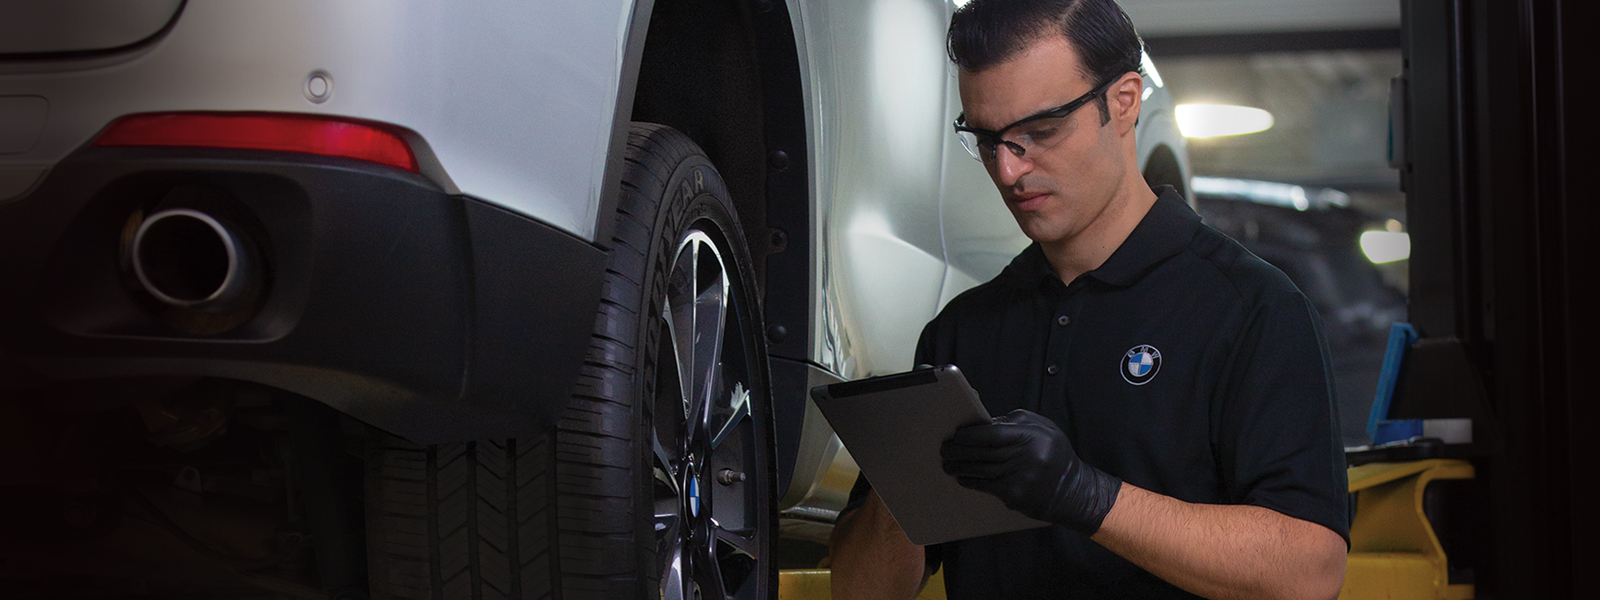 BMW Service Technician in service bay inspecting a BMW on a lift. BMW oil changes available now at BMW of El Cajon's value service center